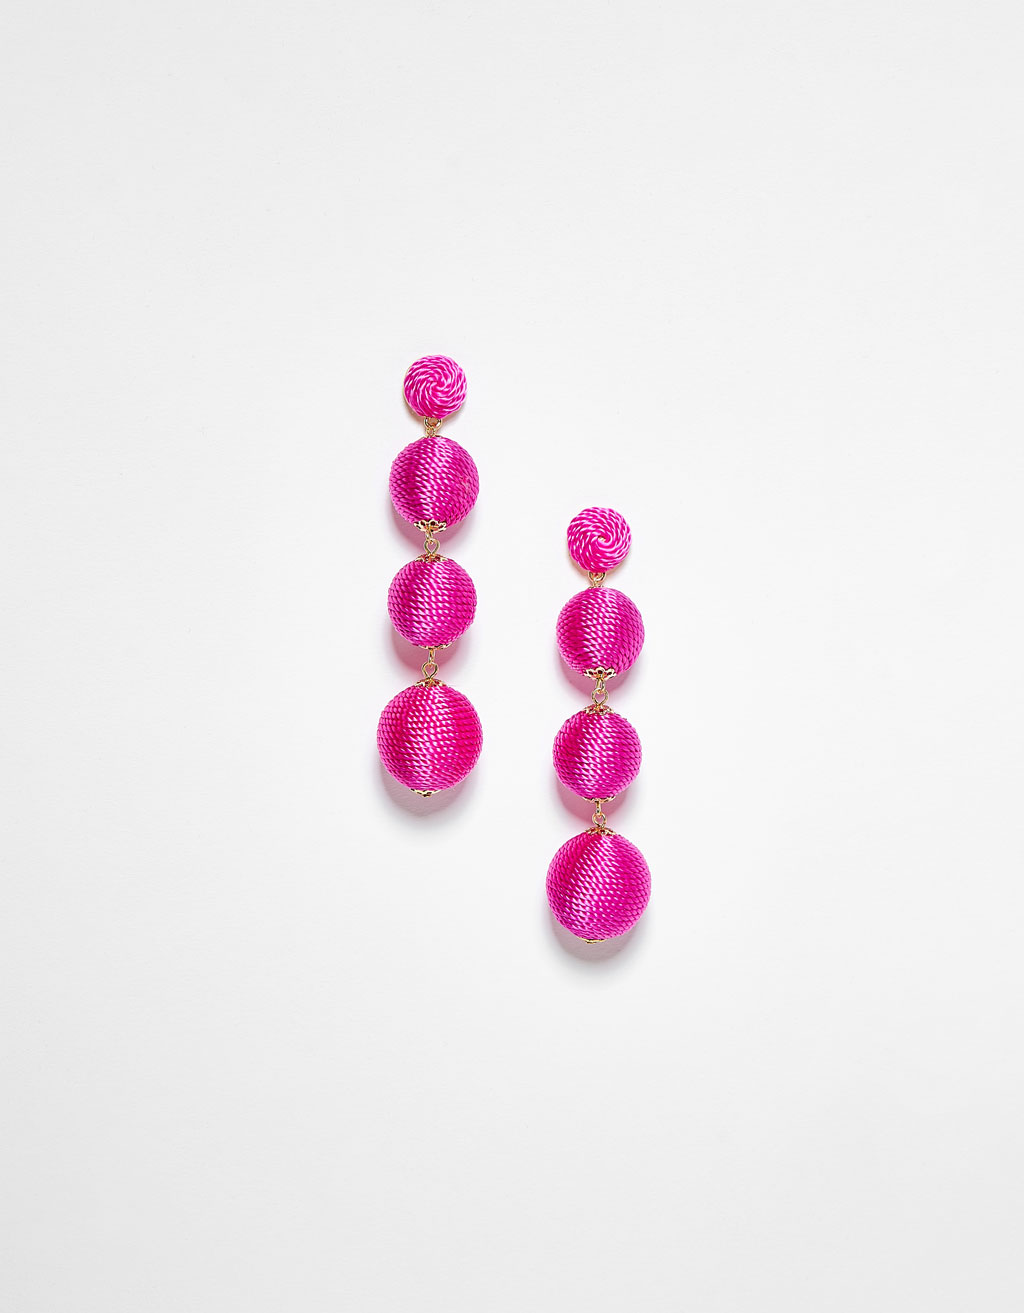 Long earrings with round beads